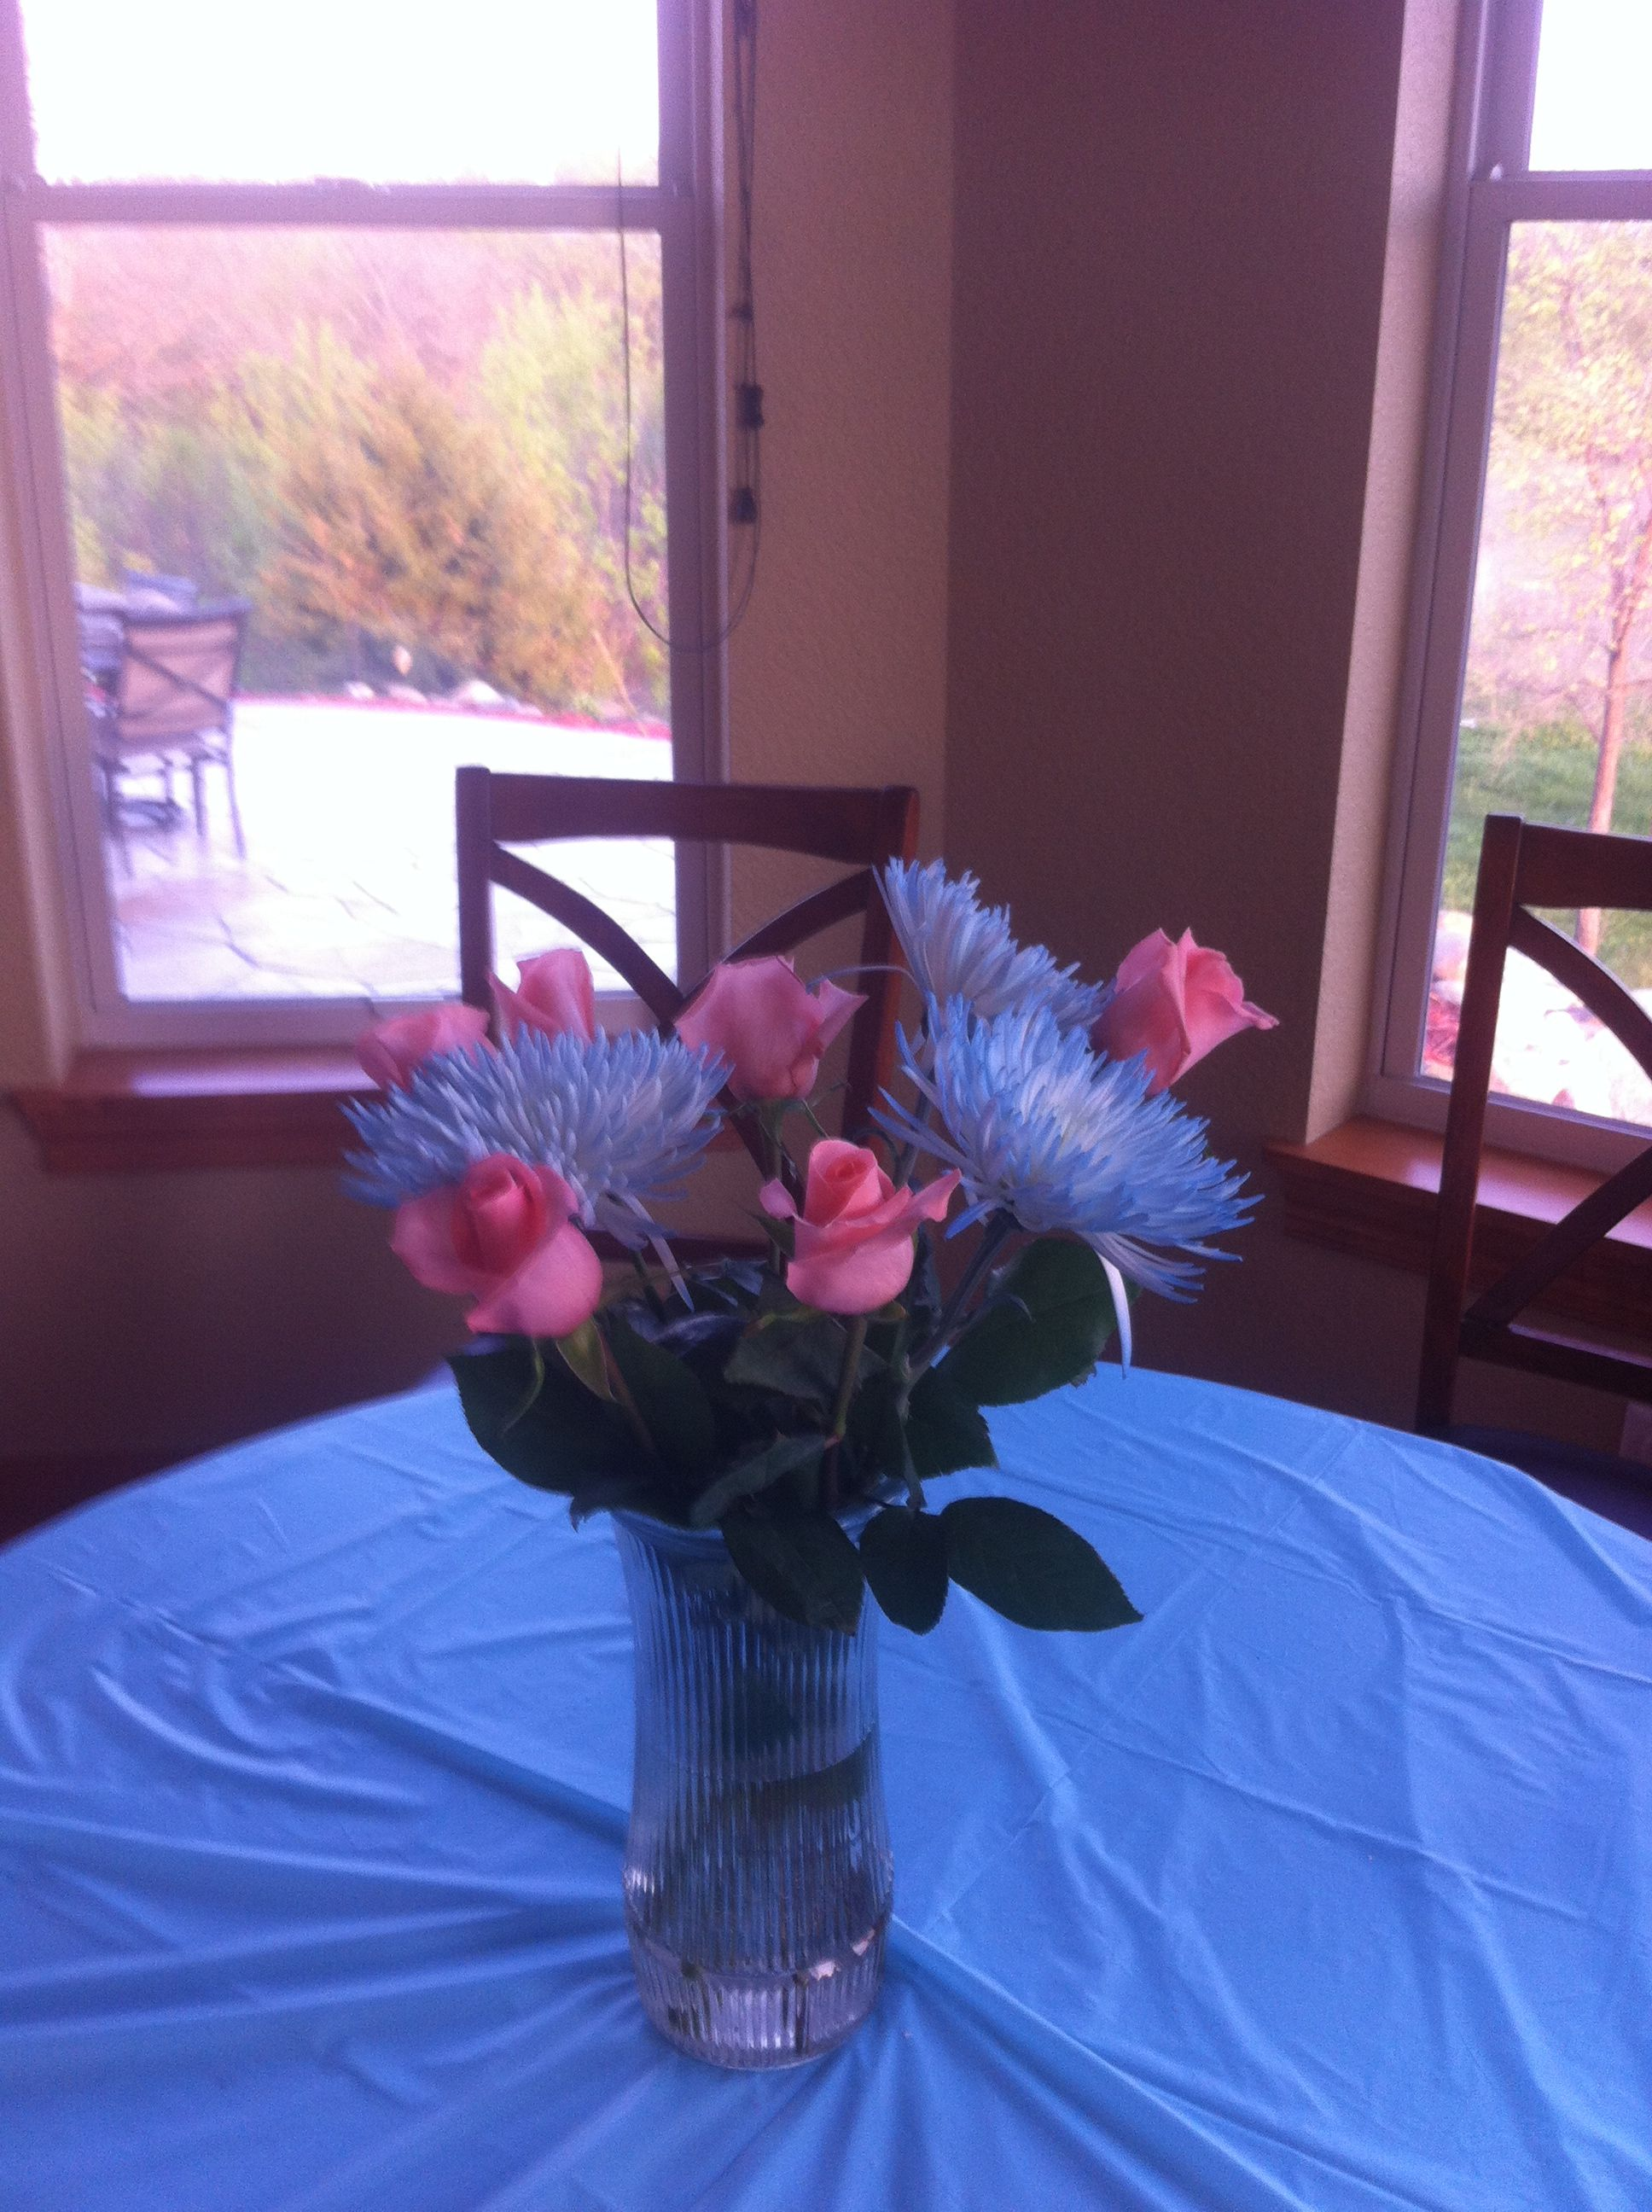 Pinkblue Flower Bouquets For Twins Gender Reveal Party I Had 2